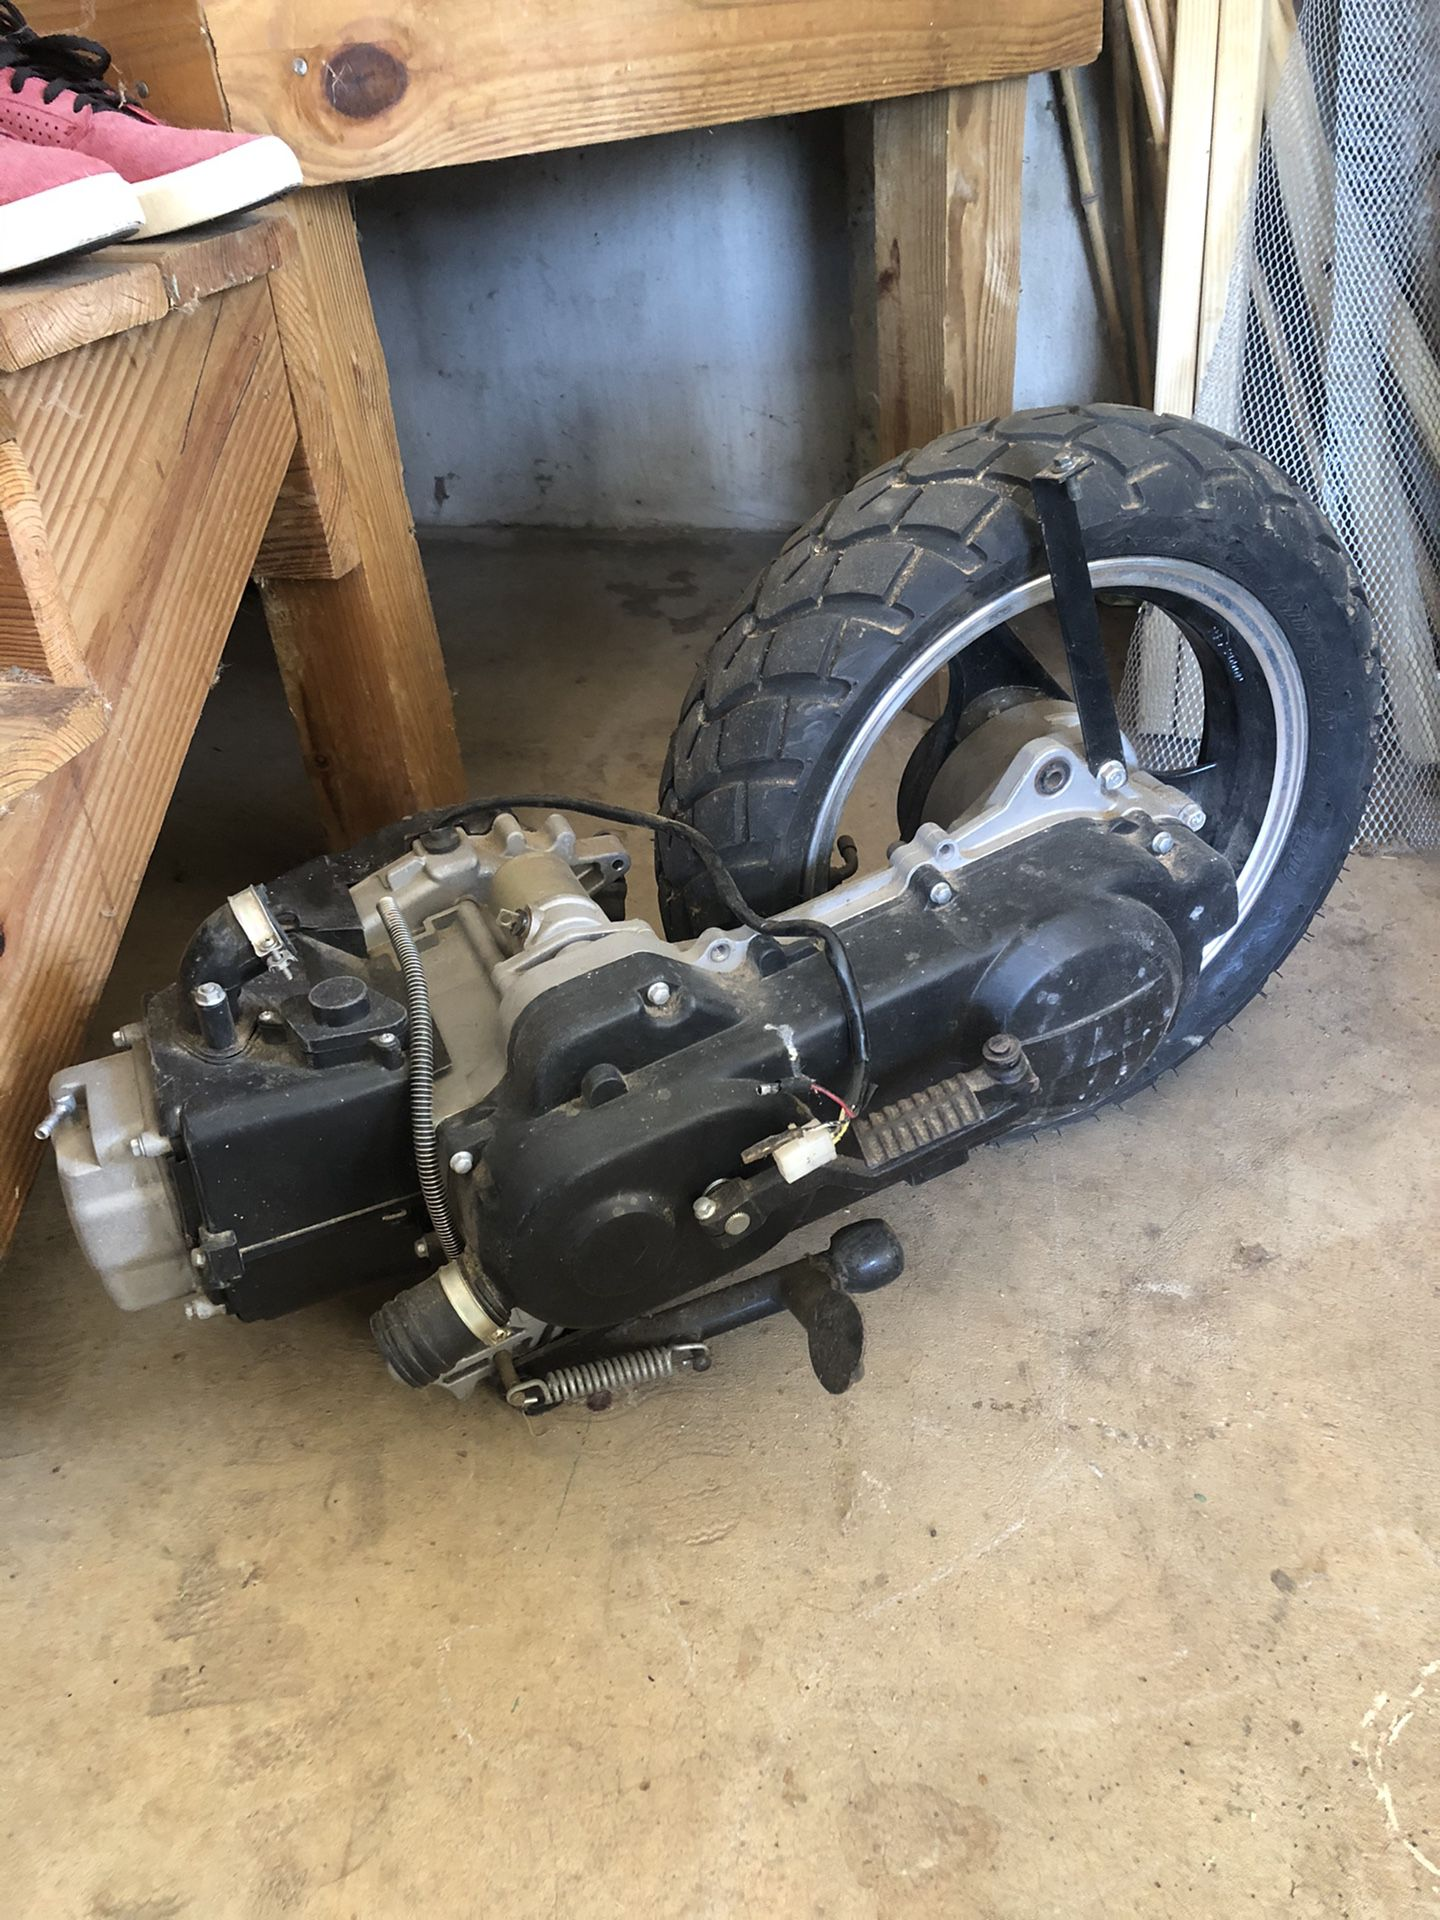 50 cc Scooter Motor And Performance Parts